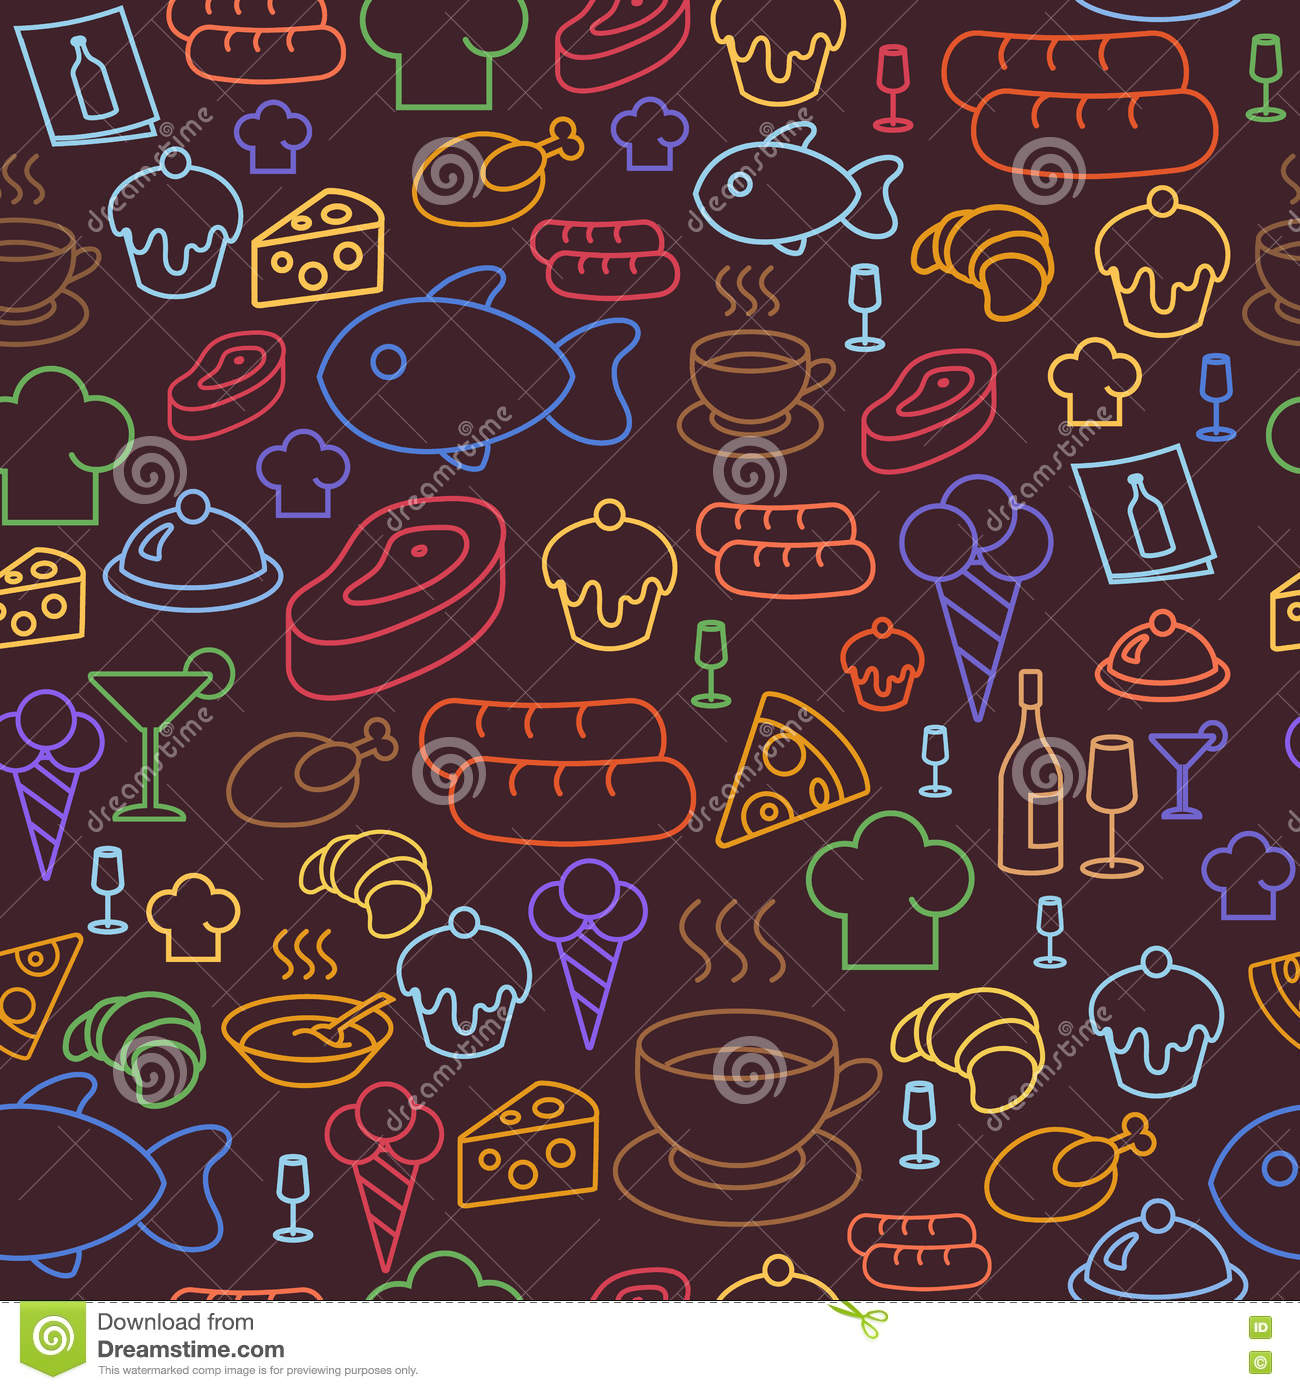 Seamless Wallpaper Pattern With Ice Cream Icons Stock: Colored Line Icons Of Restaurant And Fast Food Like Coffee